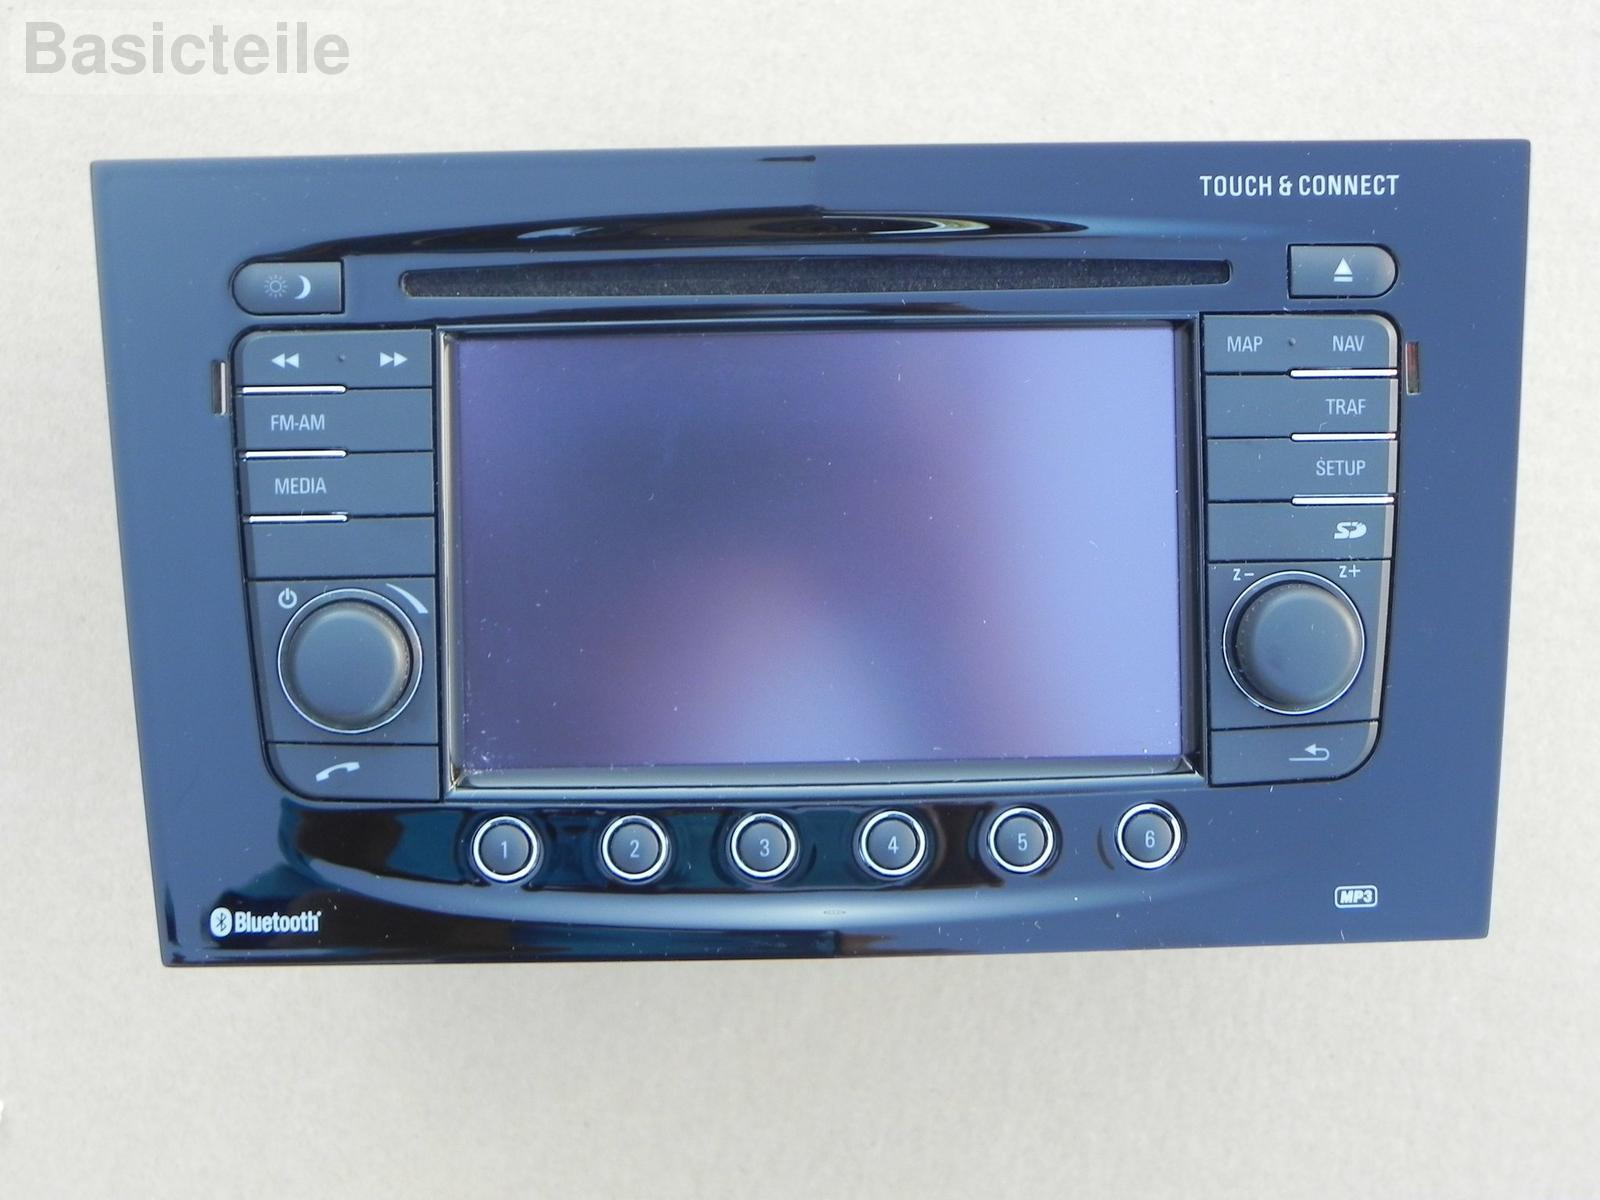 opel vauxhall corsa d radio navi touch connect schwarz. Black Bedroom Furniture Sets. Home Design Ideas